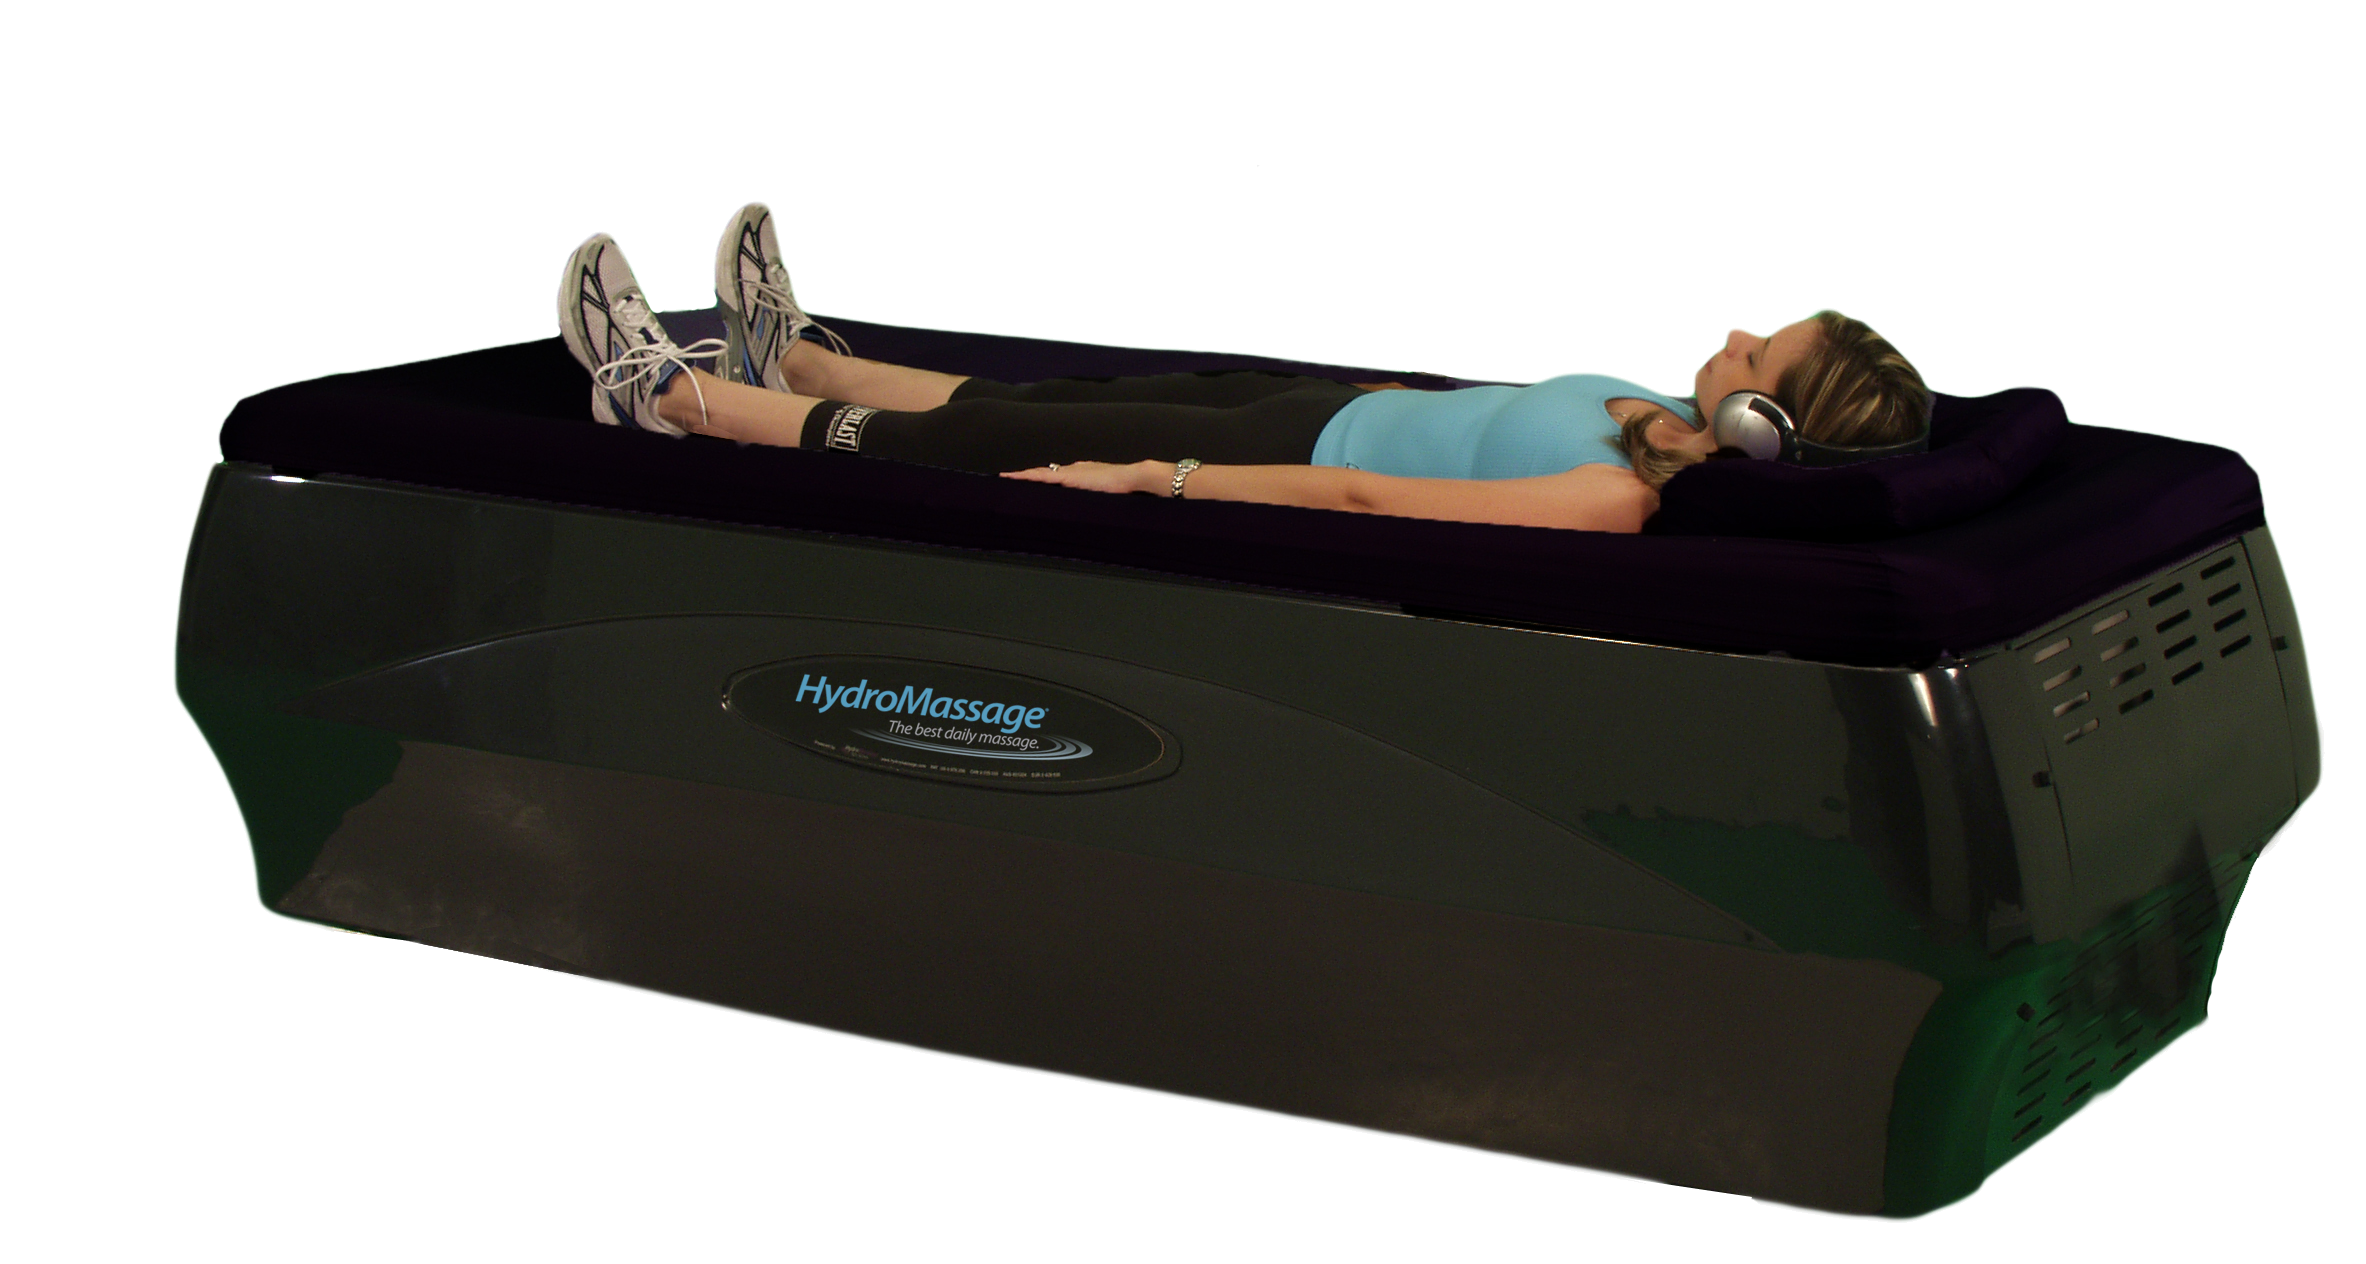 women in exercise clothes lying on hydromassage table